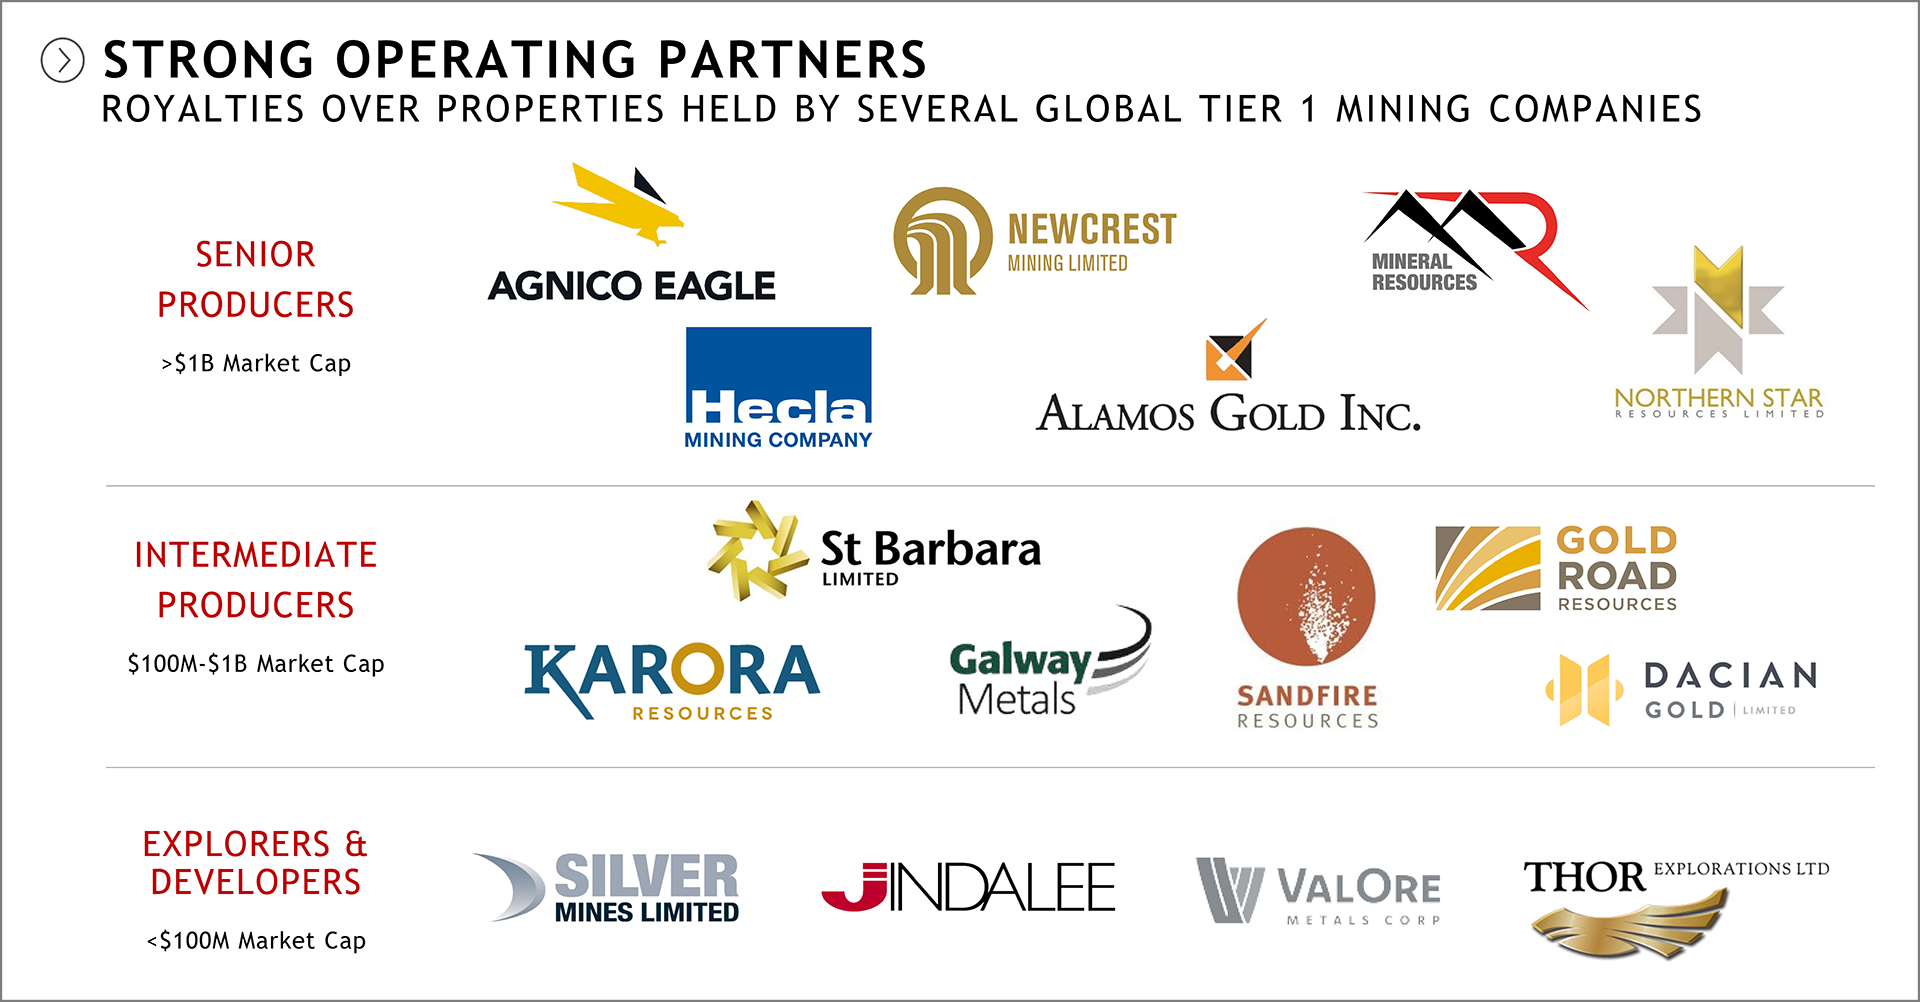 vox-royalty-strong-operating-partners